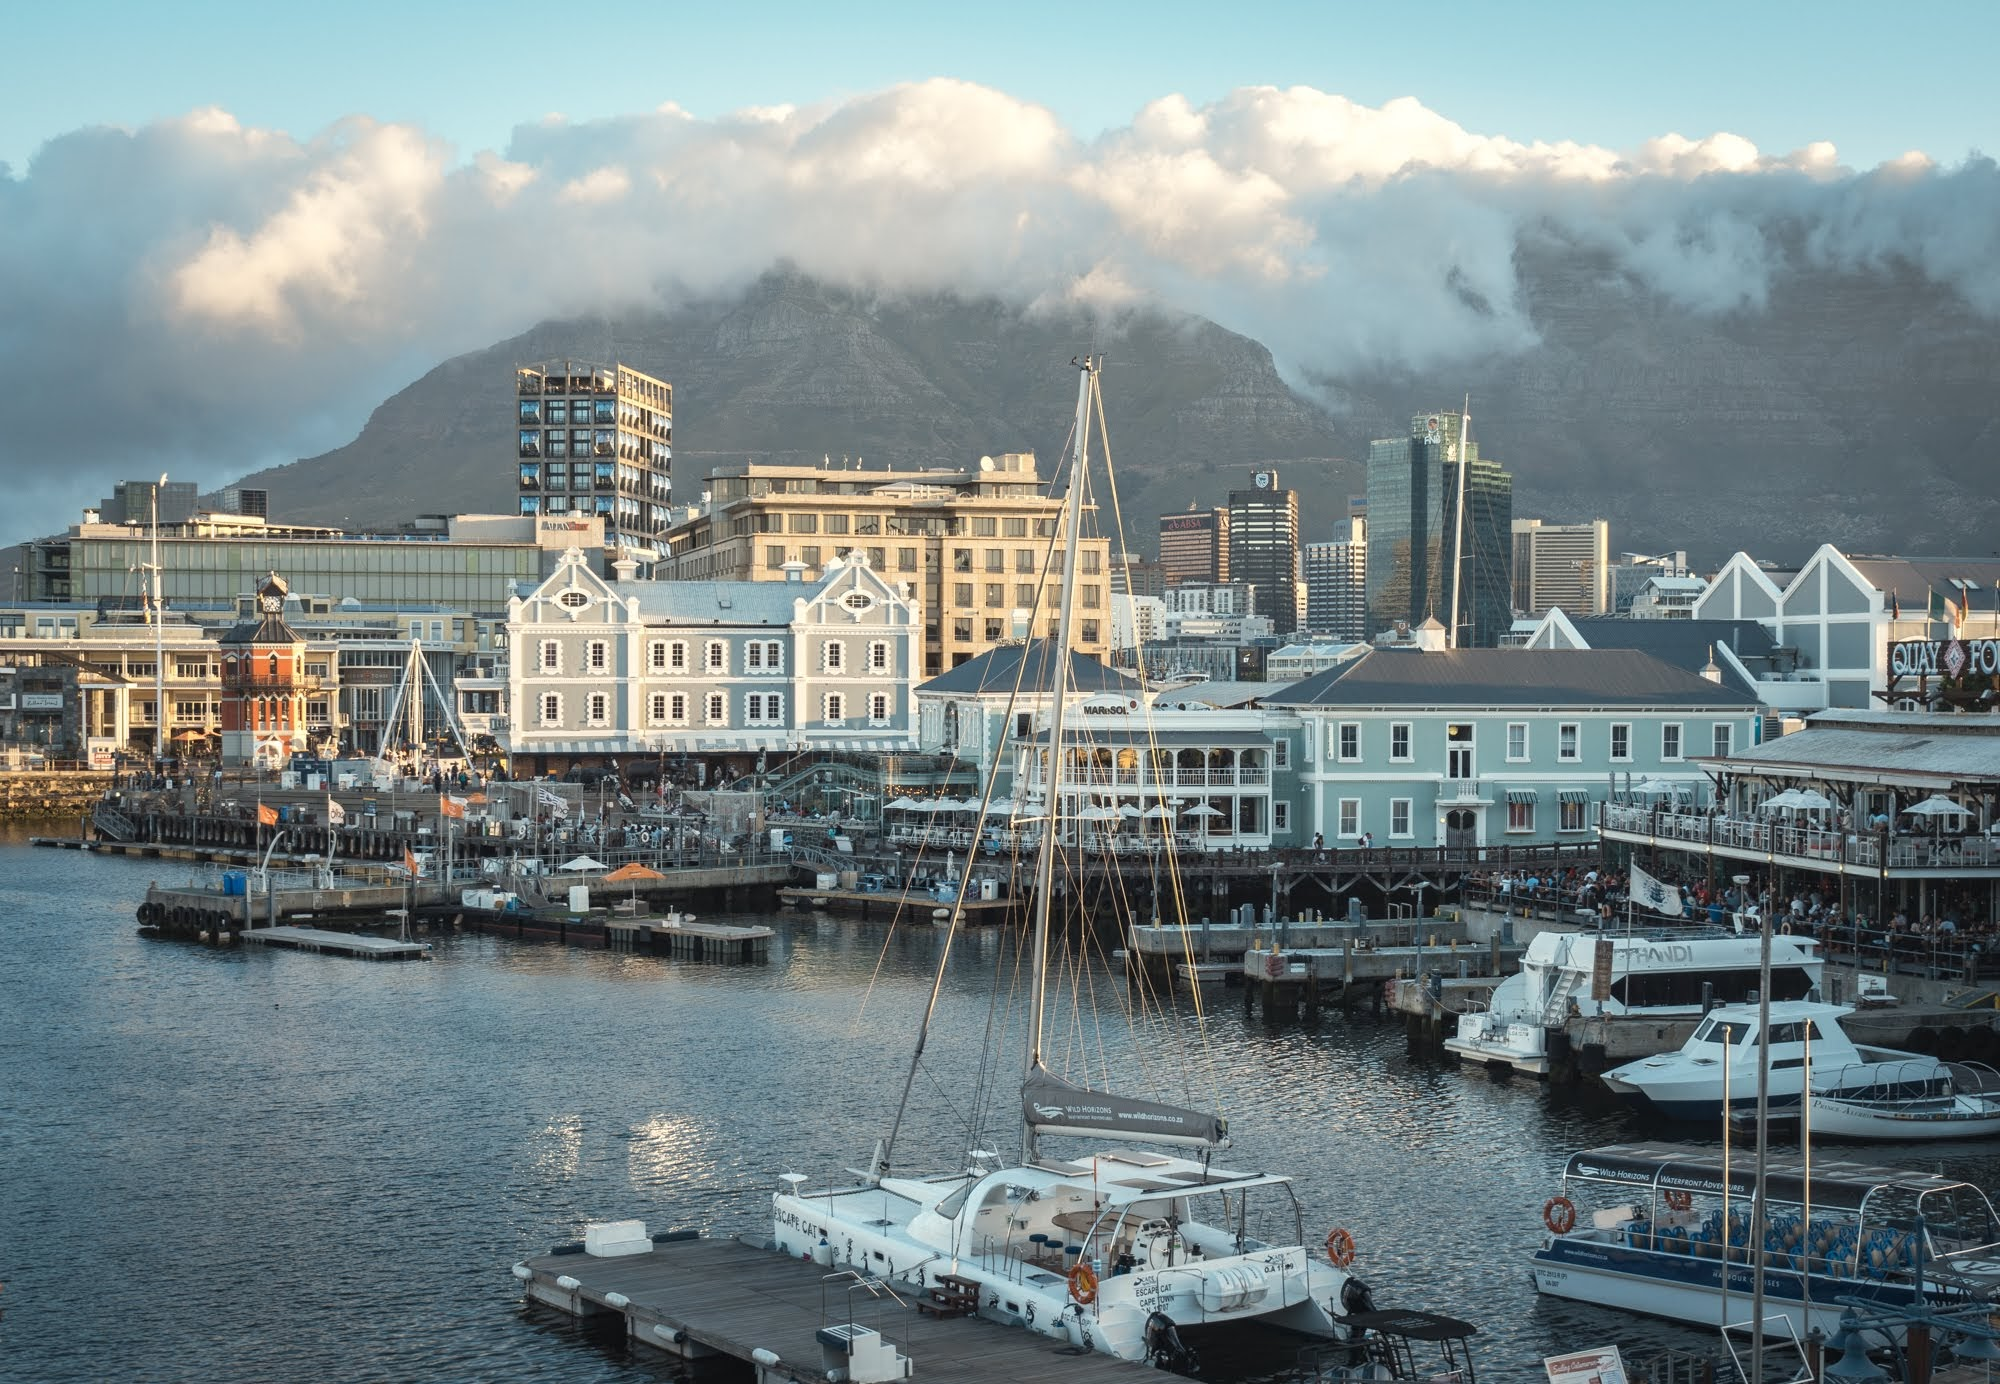 V&A Waterfront in Cape Town.